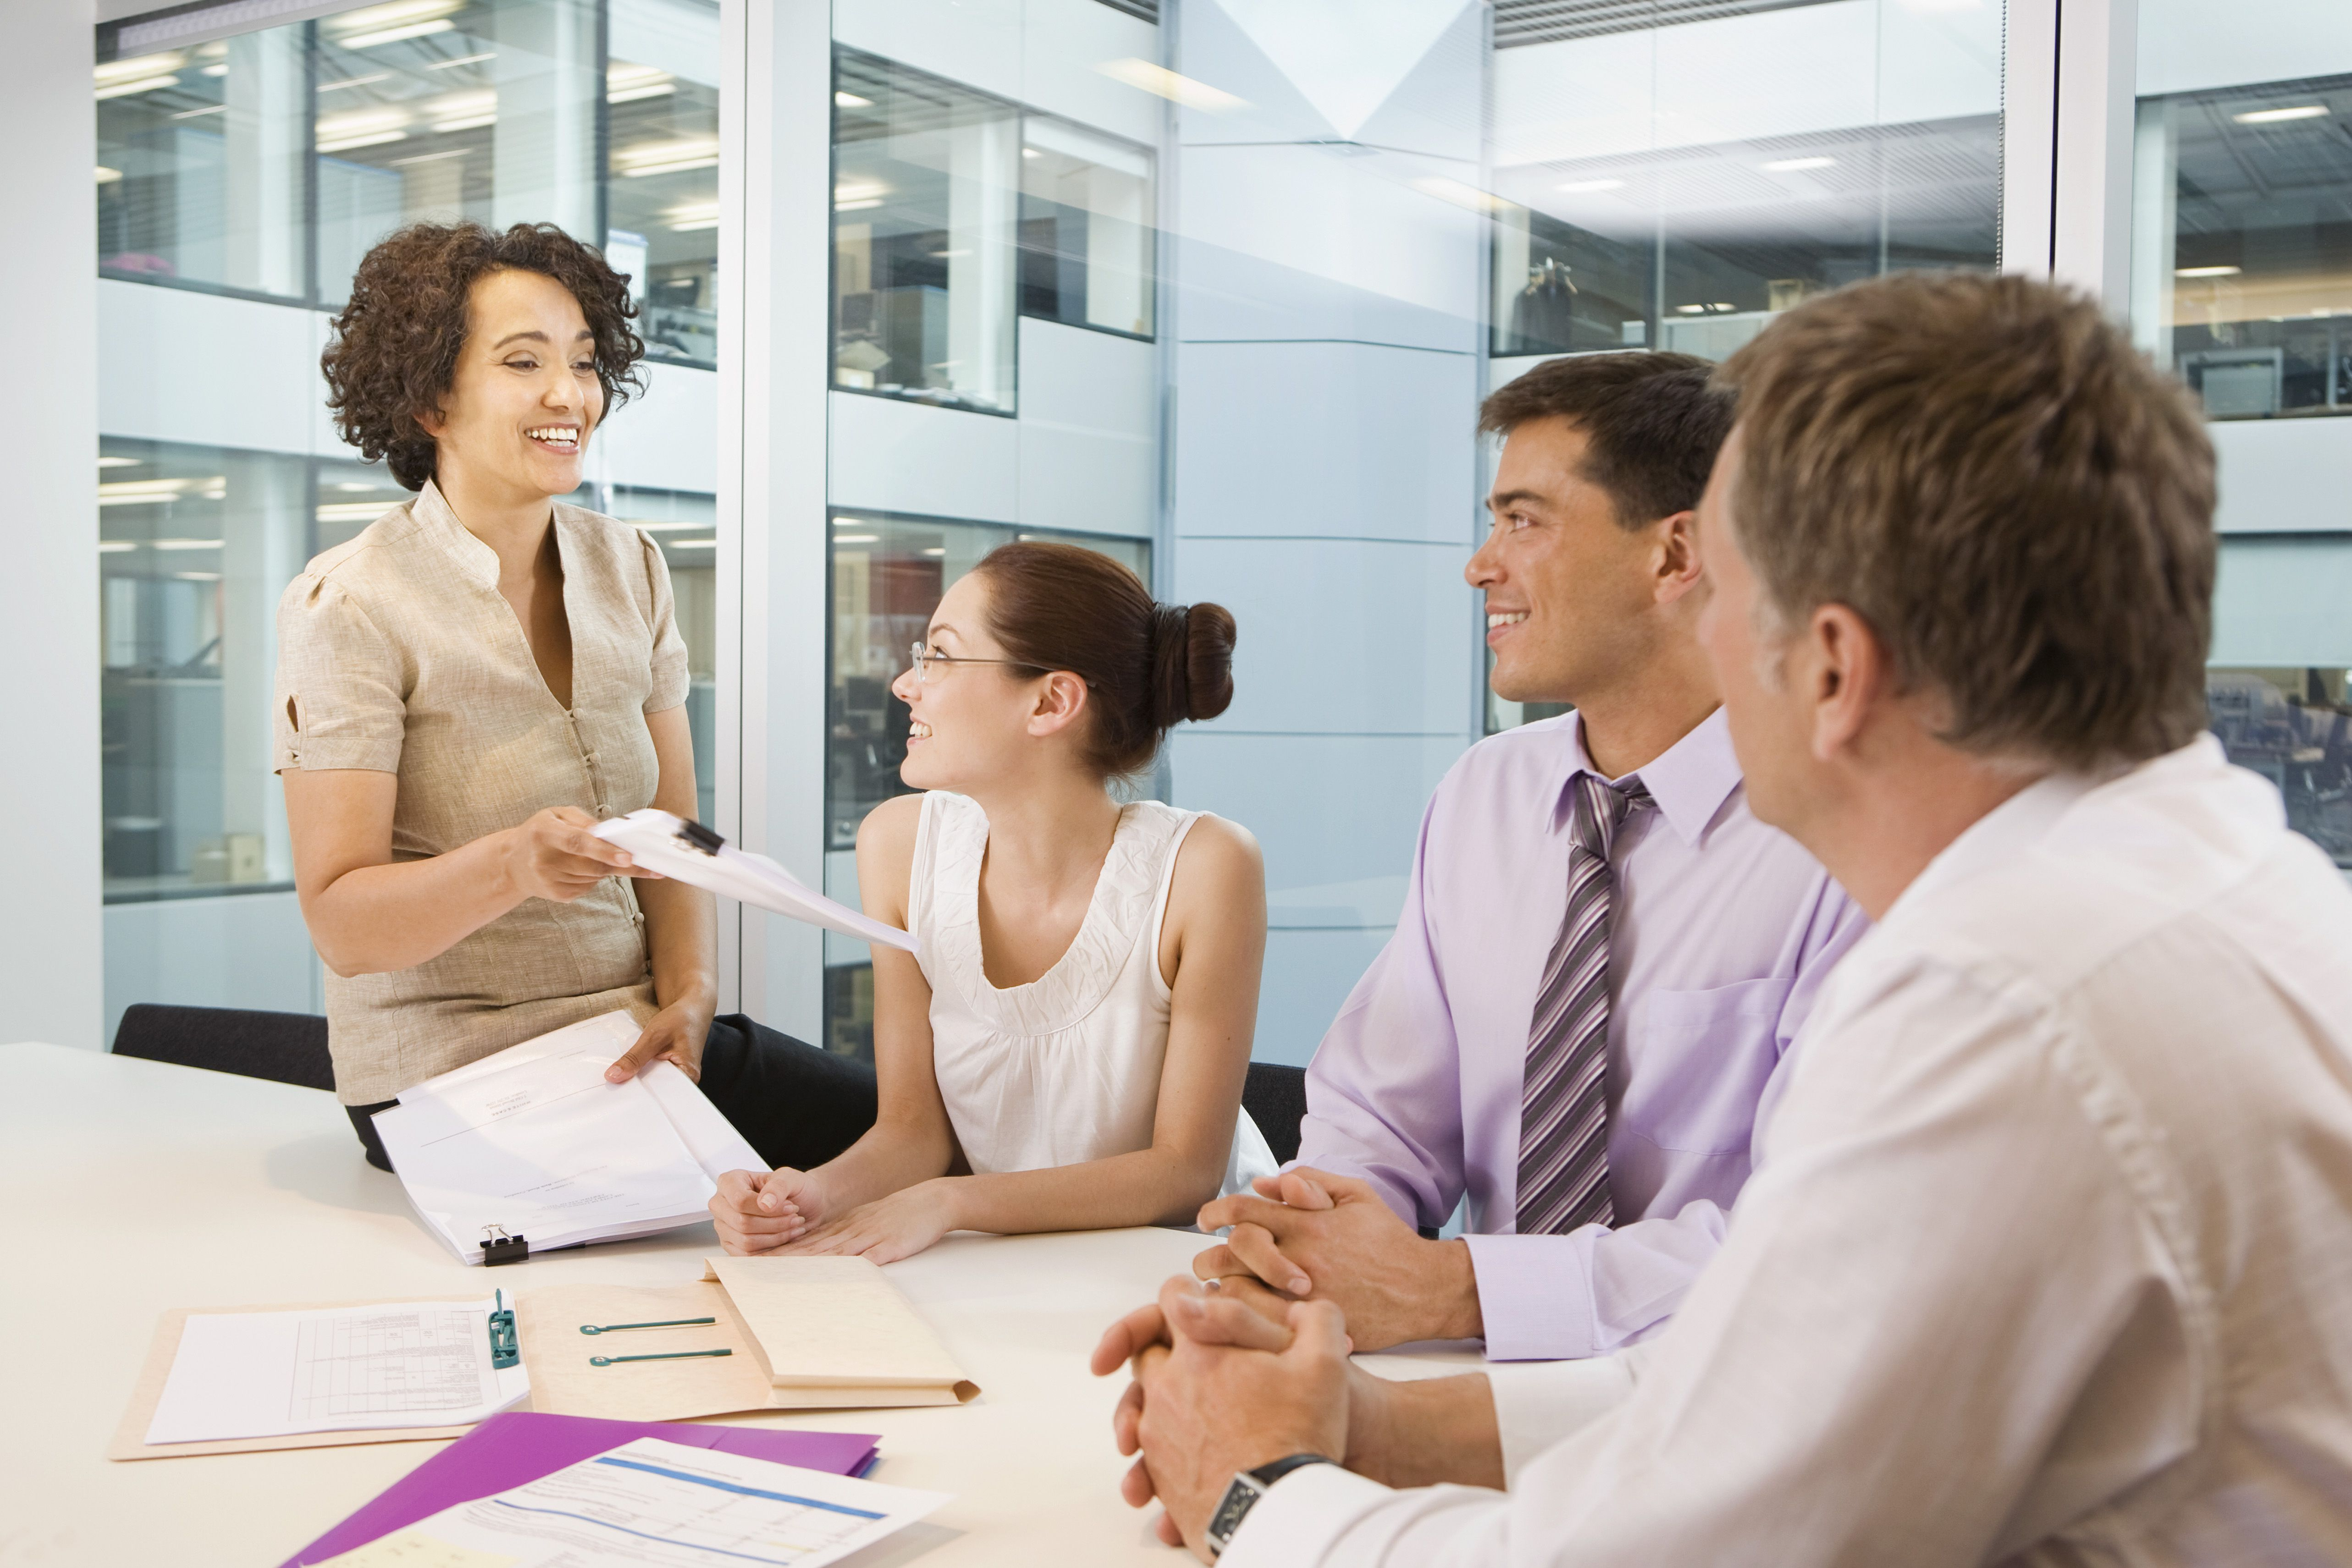 Smiling woman giving coworkers her feedback on a paper.